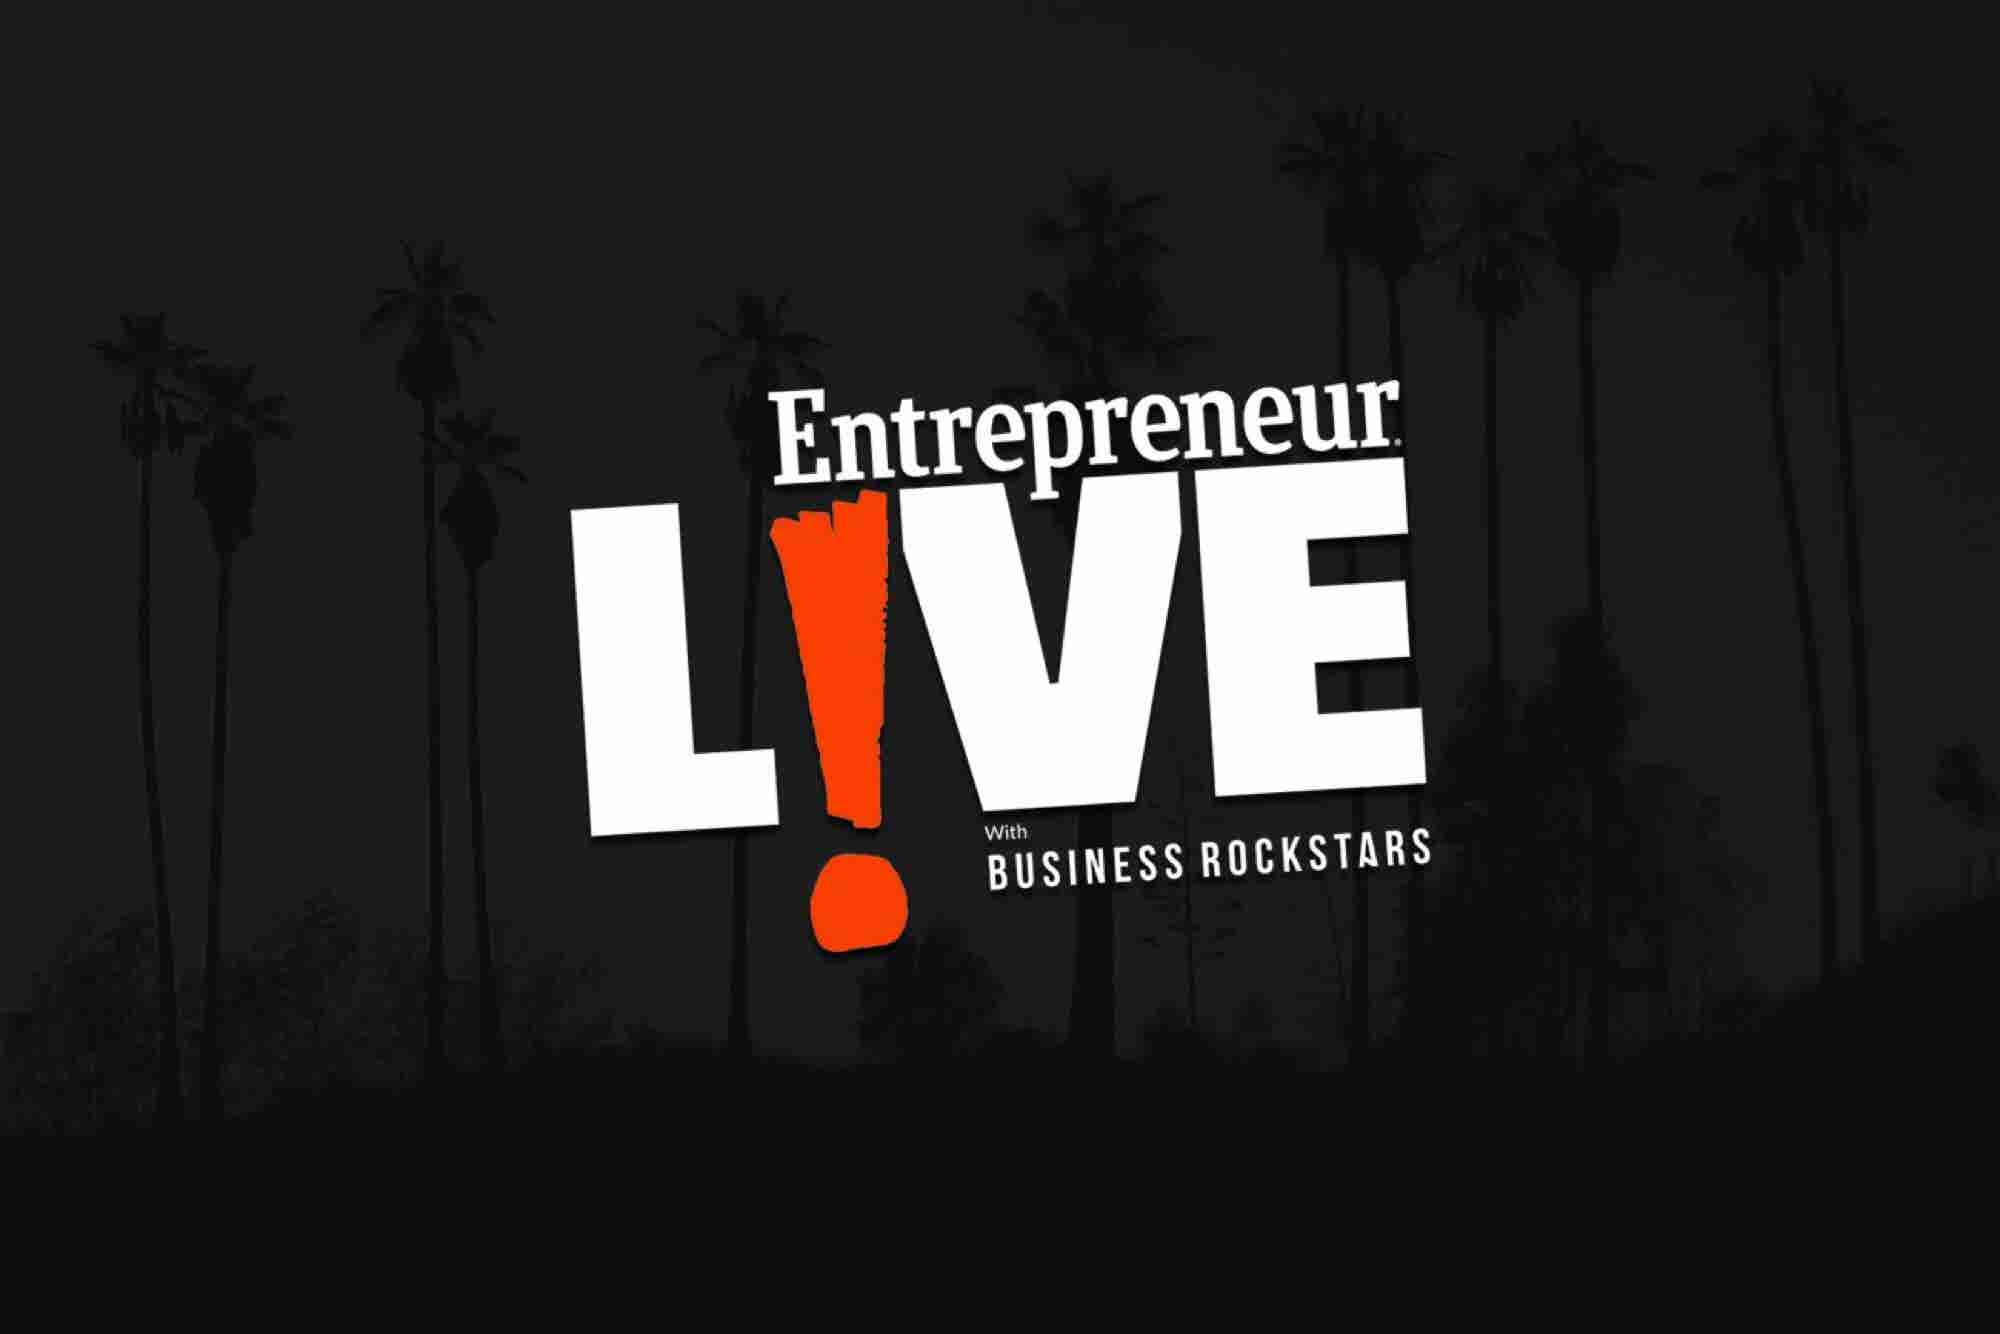 Entrepreneur Is Bringing You a Special Day-Long Event to Help Your Business Succeed